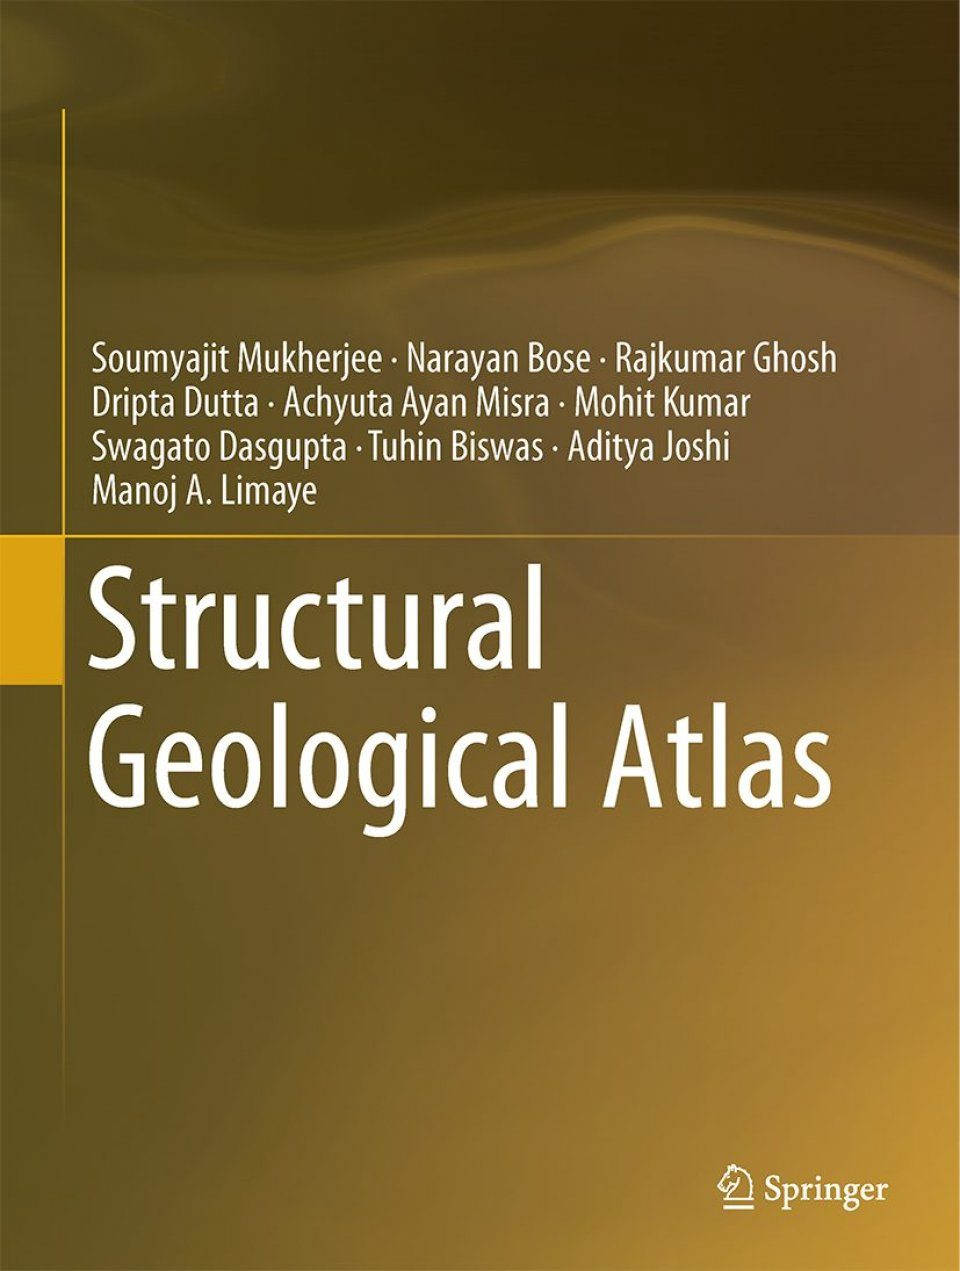 Structural Geological Atlas [of India]